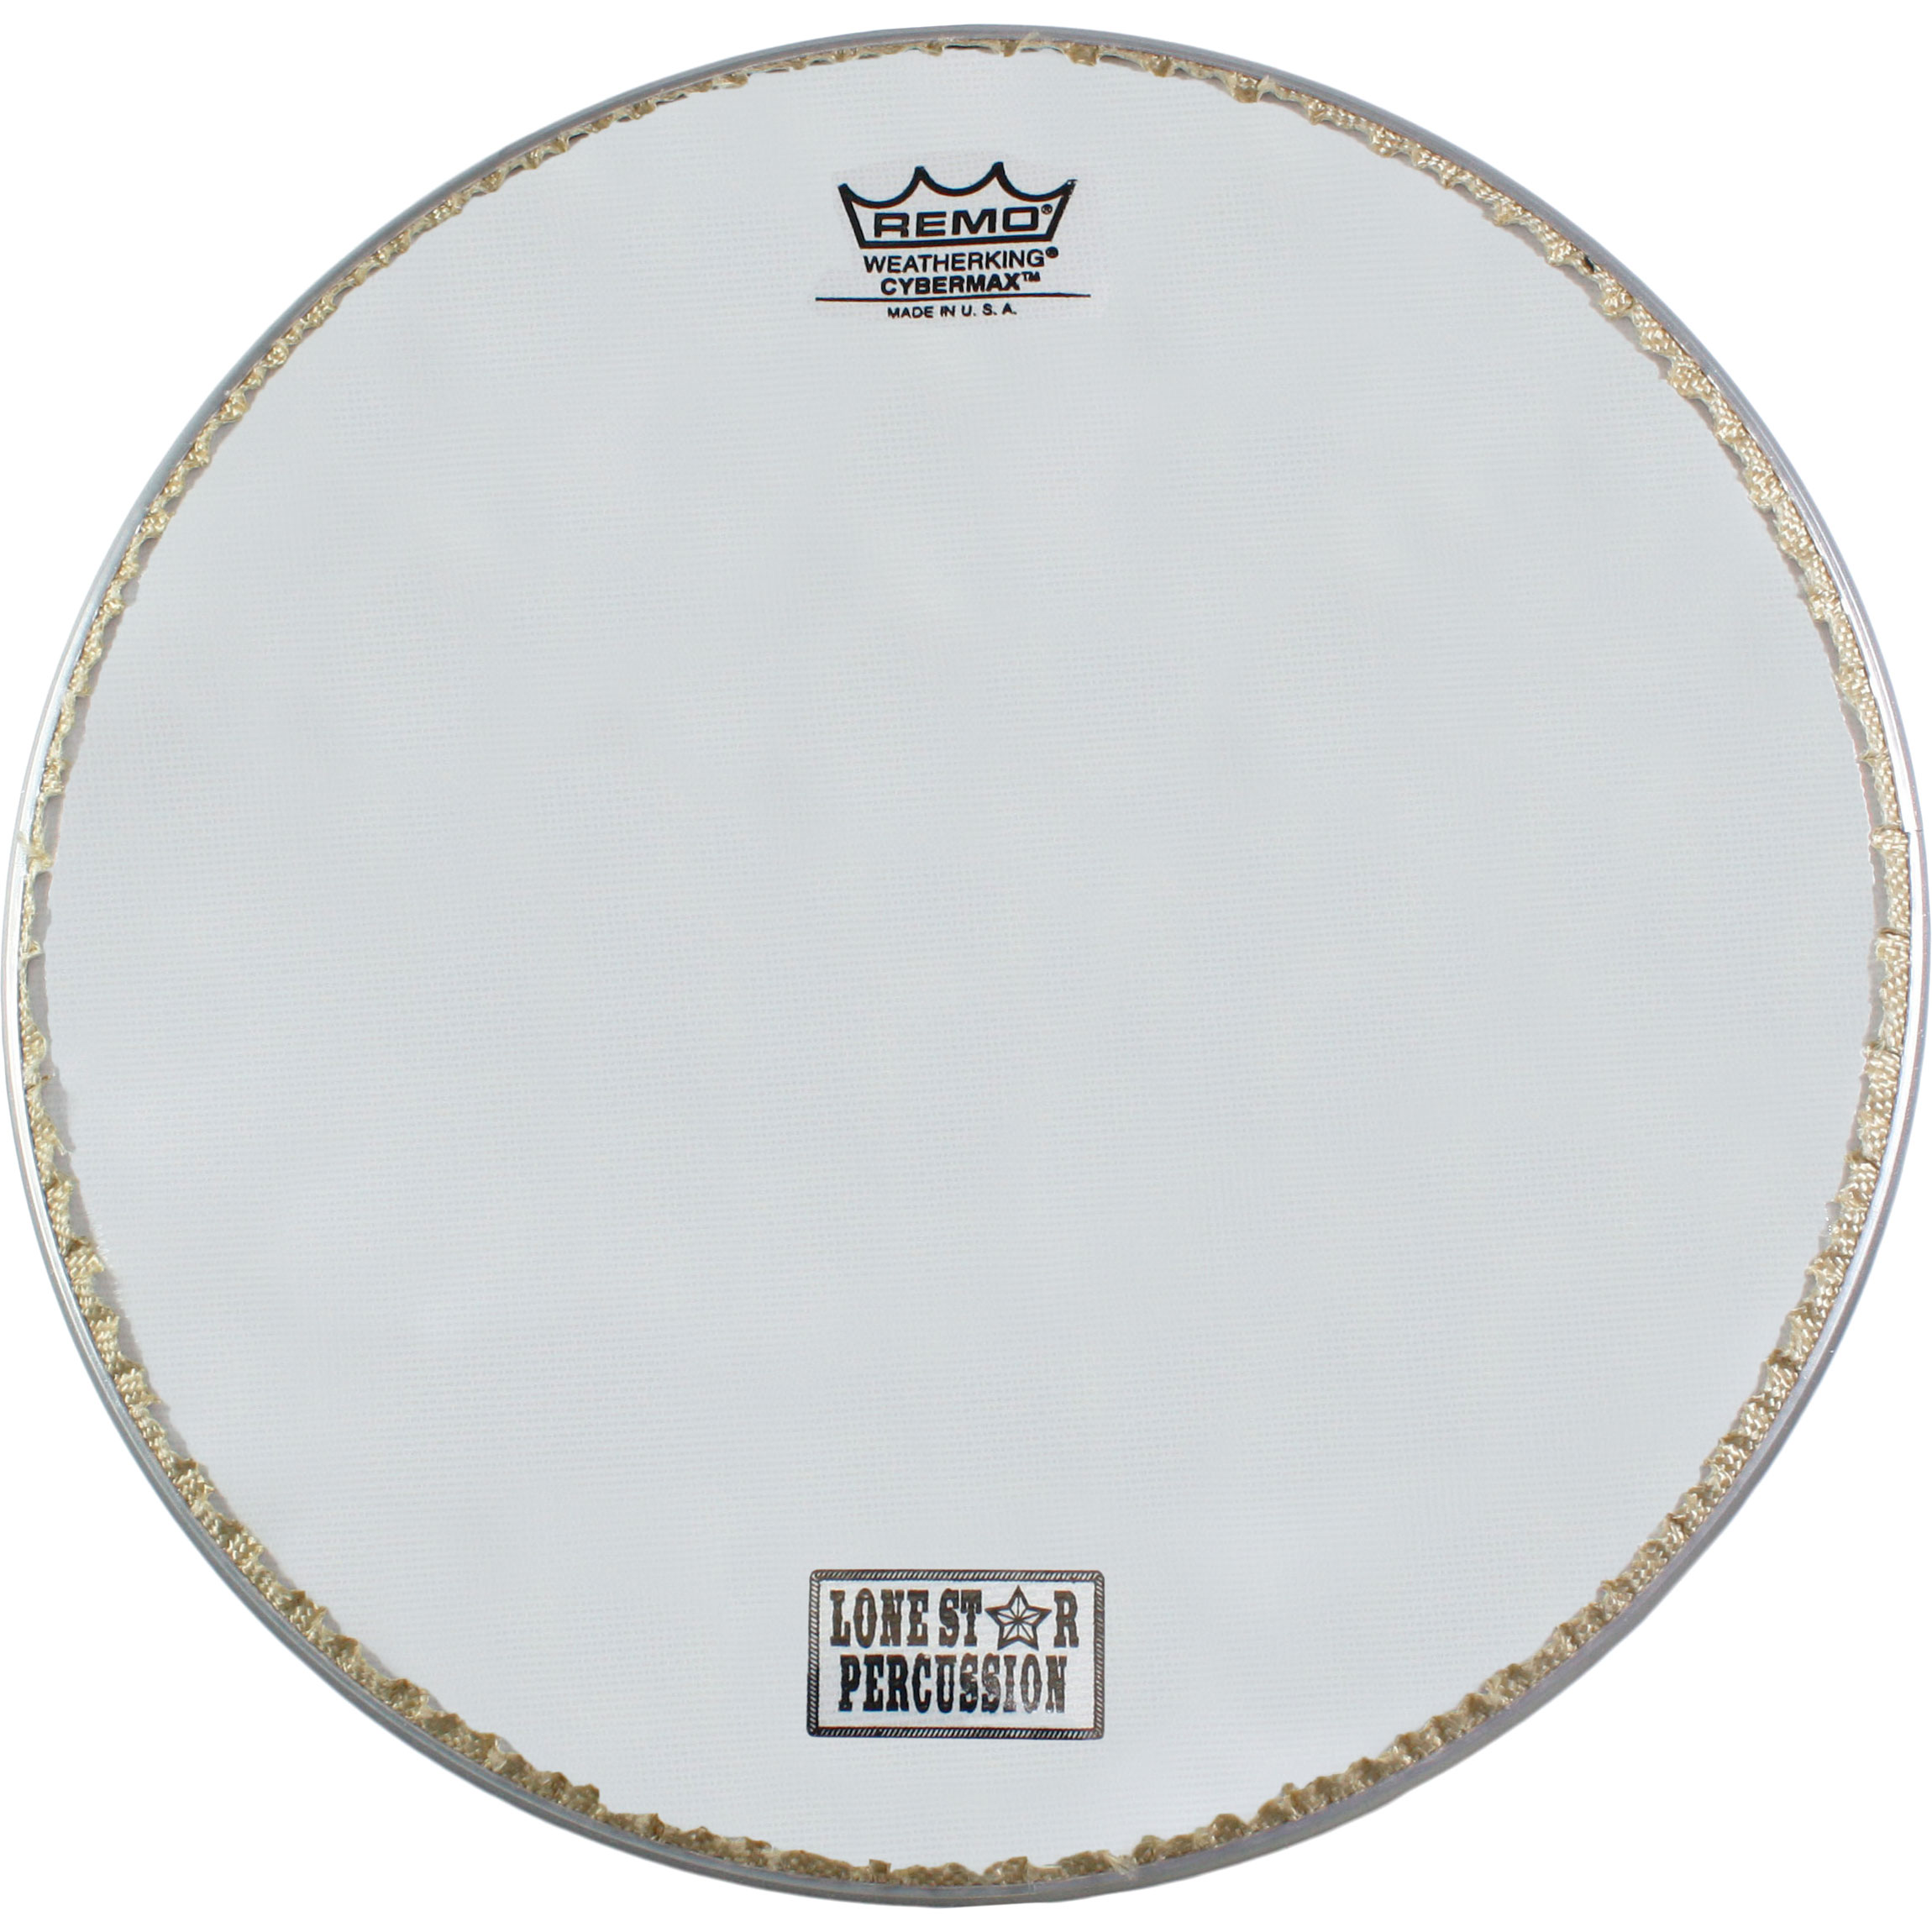 "Remo 13"" Cybermax Marching Snare Drum Top (Batter) Head"